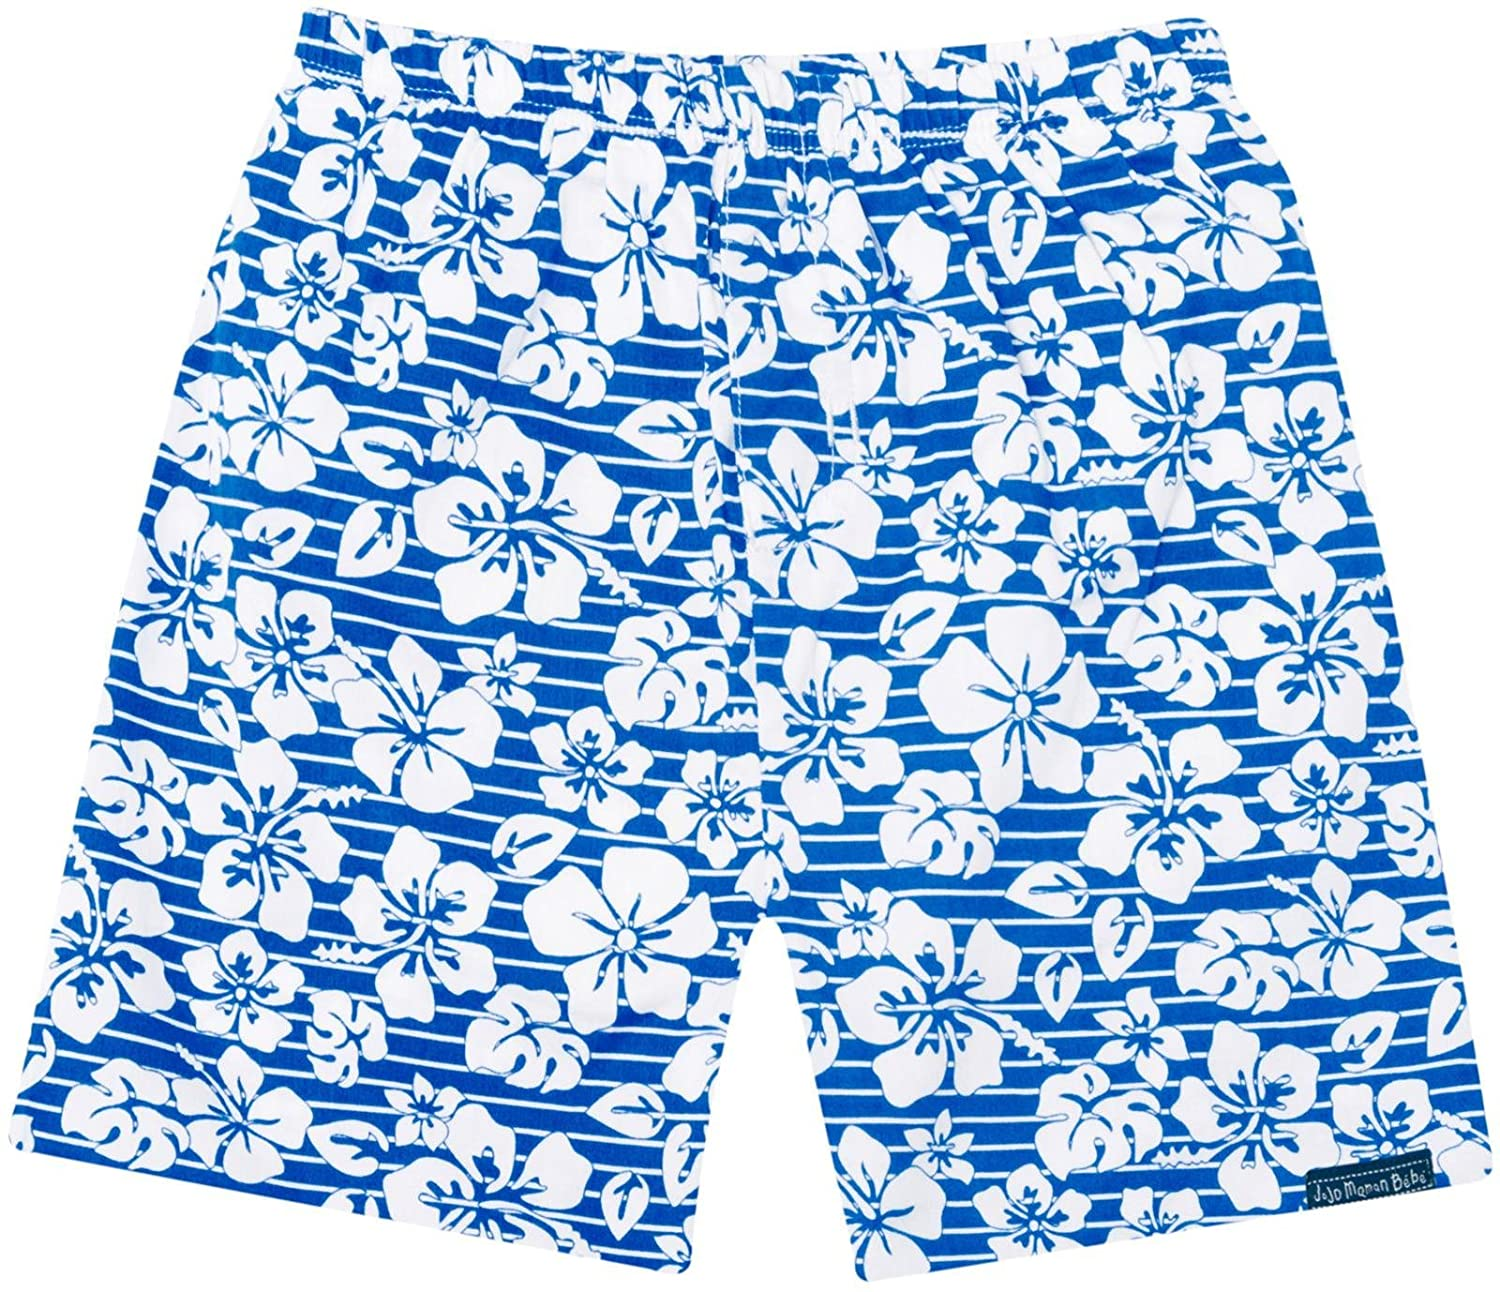 2-3 - Blue Hawaiian Baby//Toddler JoJo Maman Bebe Little Boys Swim Shorts